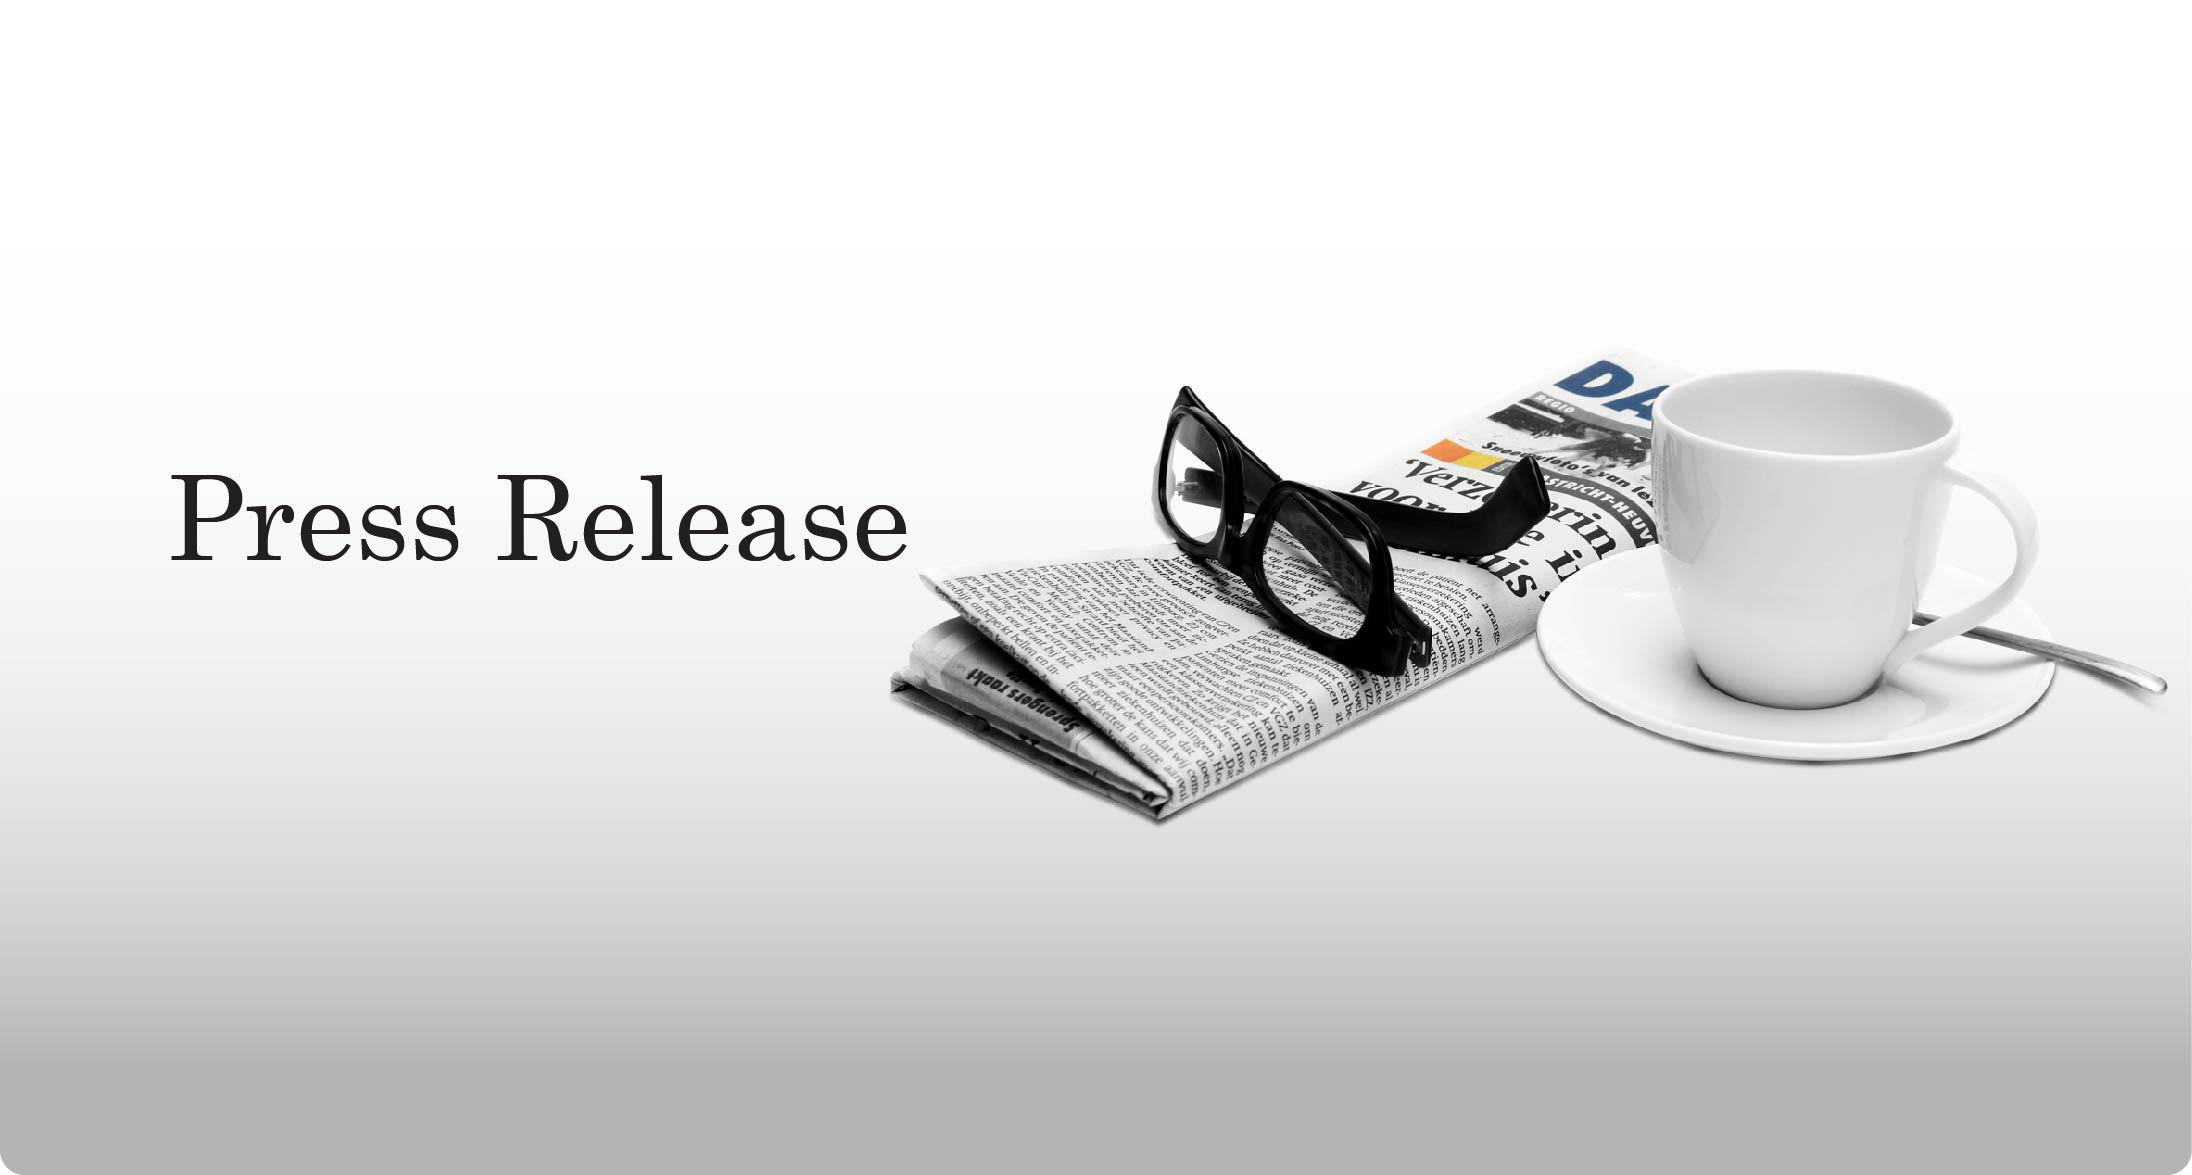 Rely on Press Releases for Traffic, Exposure, attention and Success